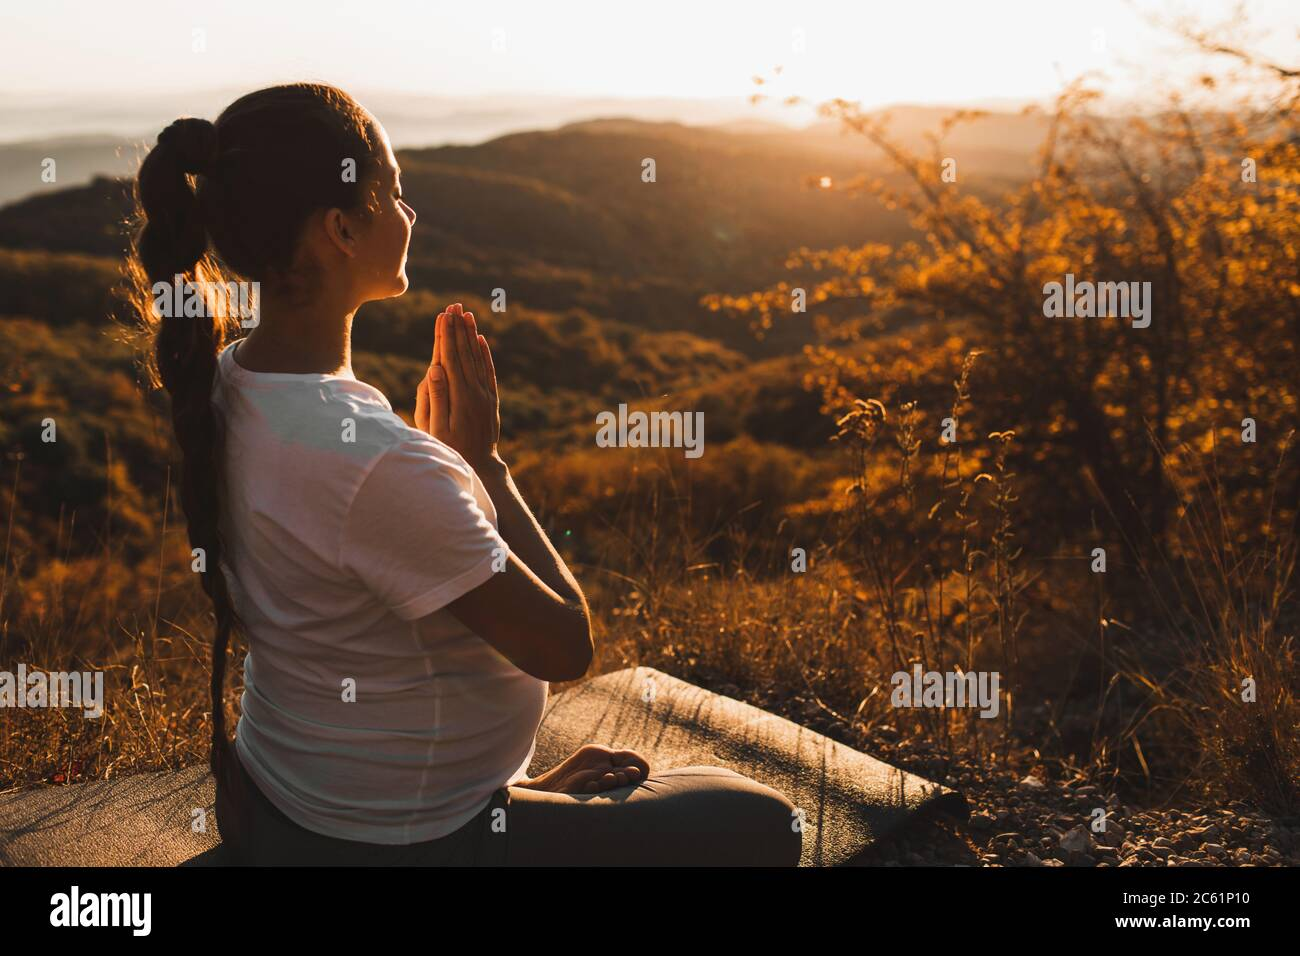 Spiritual and emotional concept of harmony with nature in maternity time. Pregnant woman praying alone outdoors on hill at sunset. Amazing autumn mountain view. Stock Photo